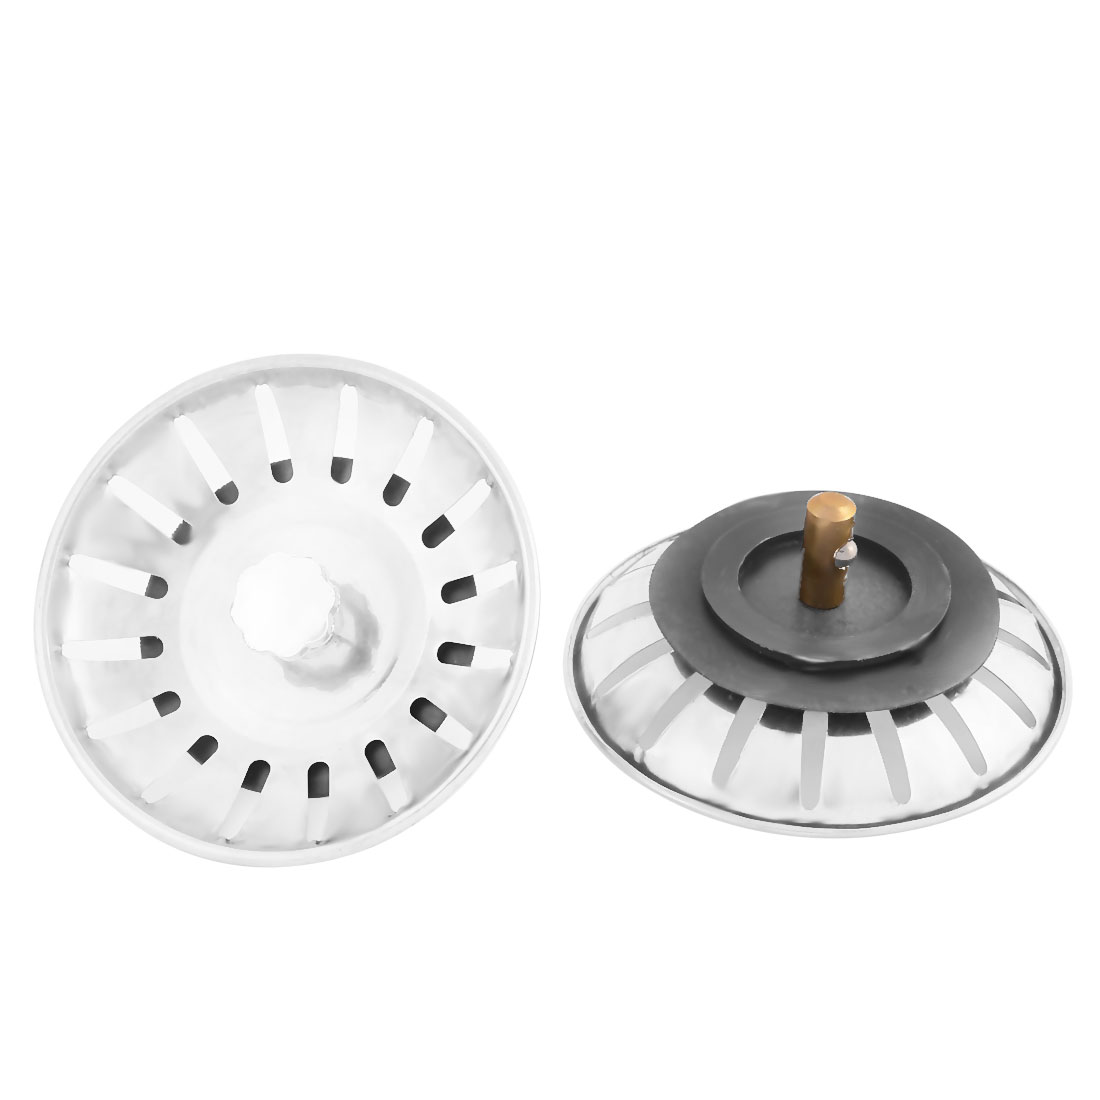 Kitchen Bathroom Mesh Hole Basin Disposer Sink Drain Strainer Stopper Silver Tone 2pcs